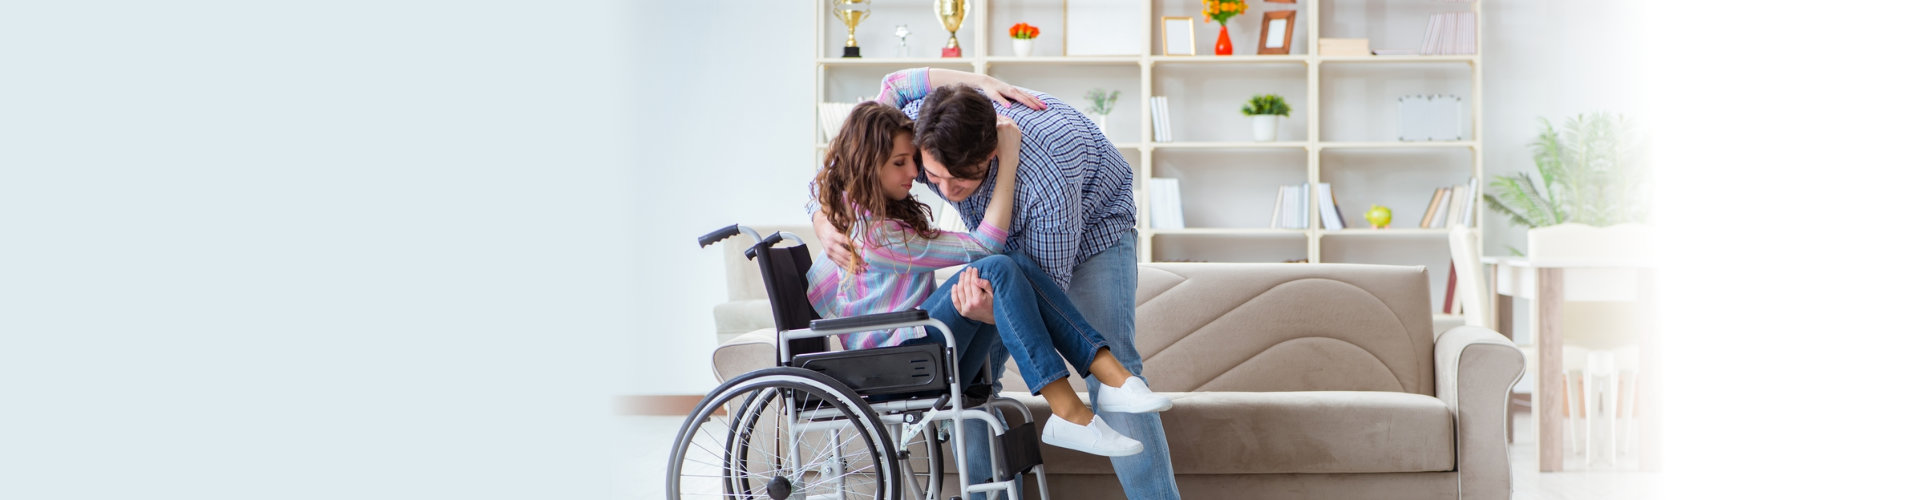 man carrying a woman from her wheelchair